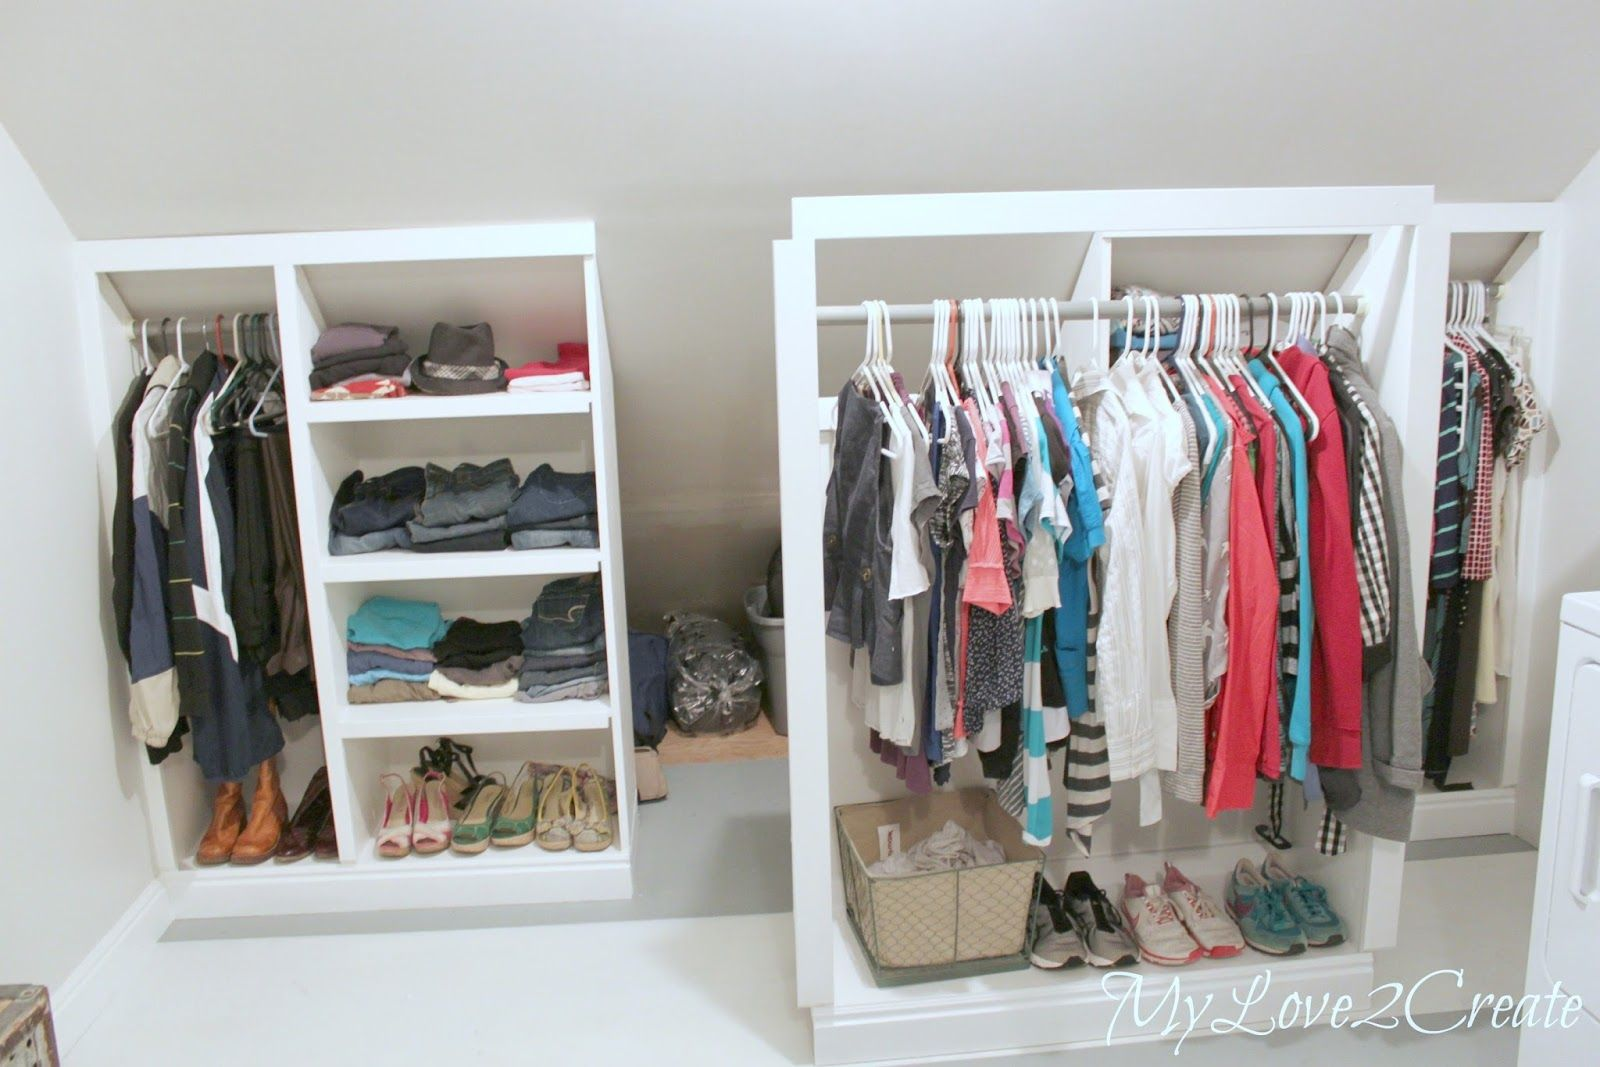 Roller Badezimmerschrank ~ This is amazing and one hell of a job but may be worth it? i